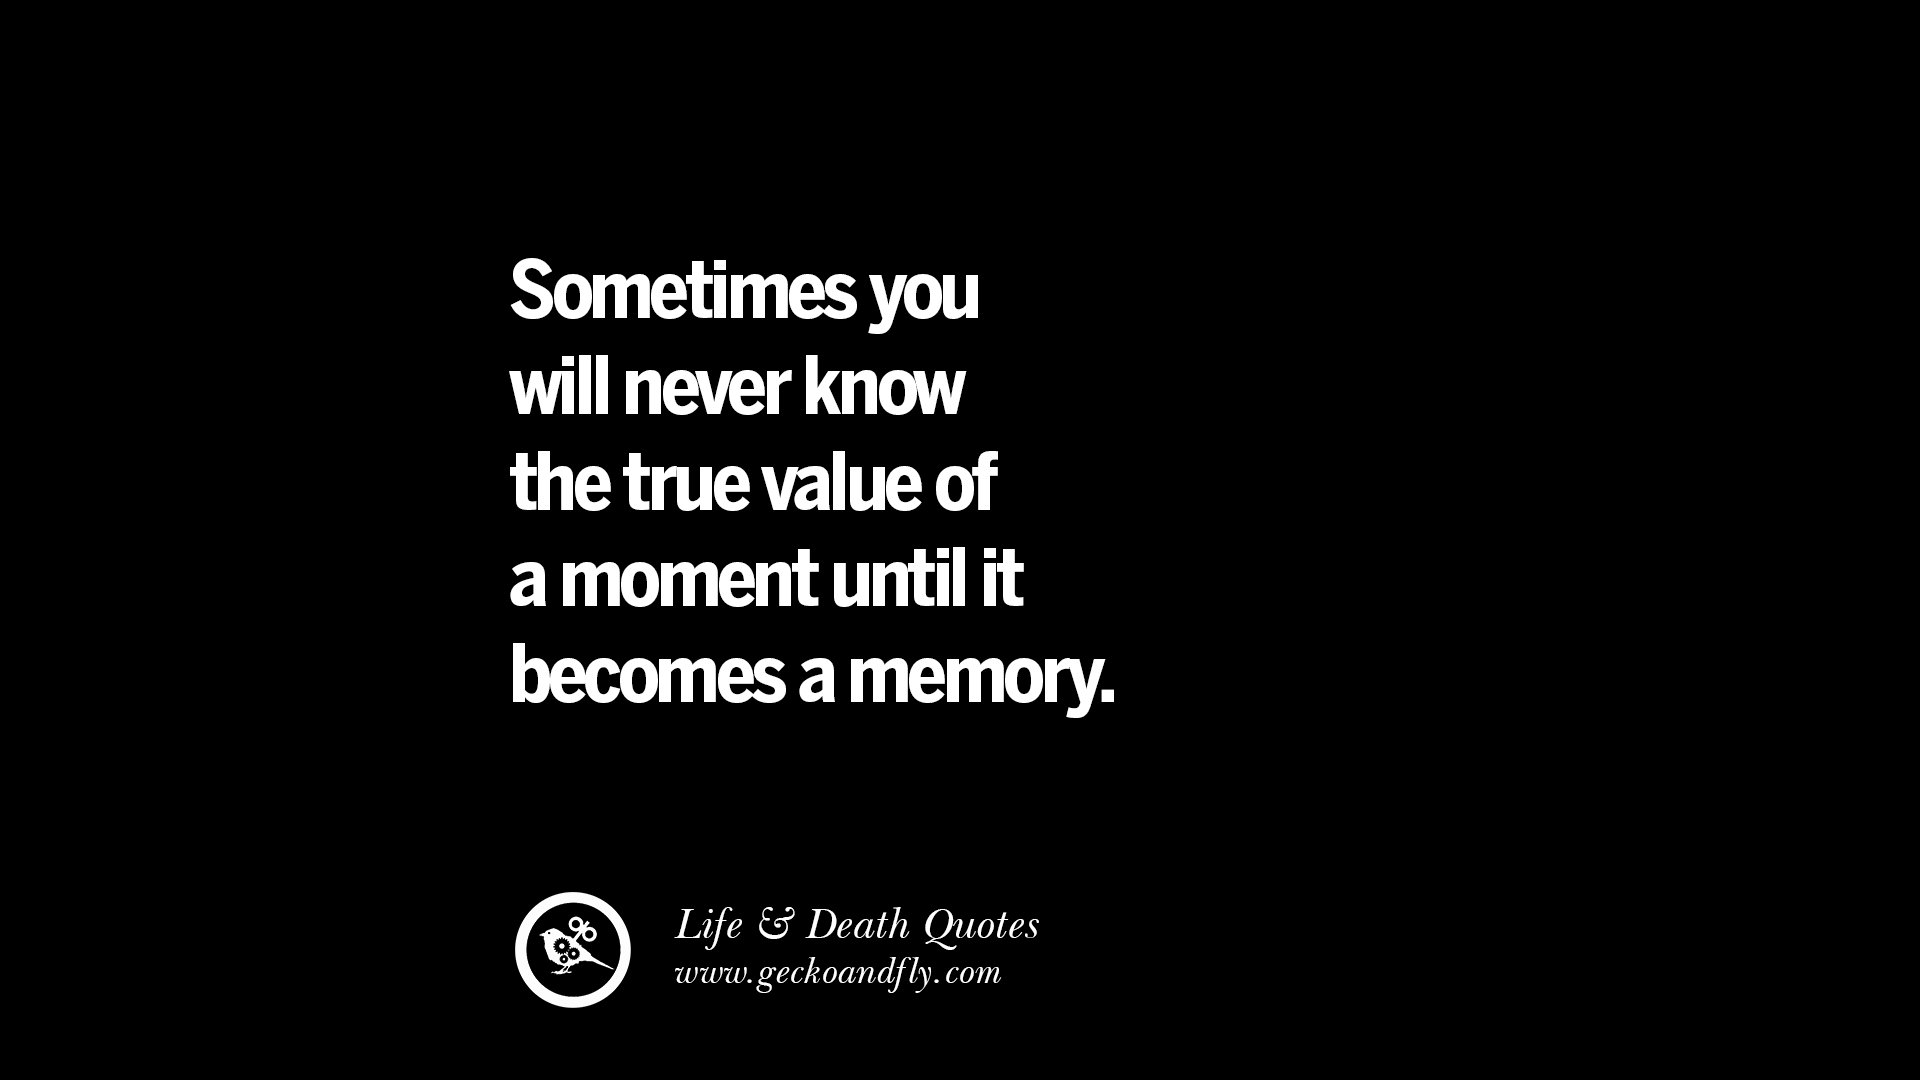 Quotes About Losing Someone 20 Inspirational Quotes On Life Death And Losing Someone